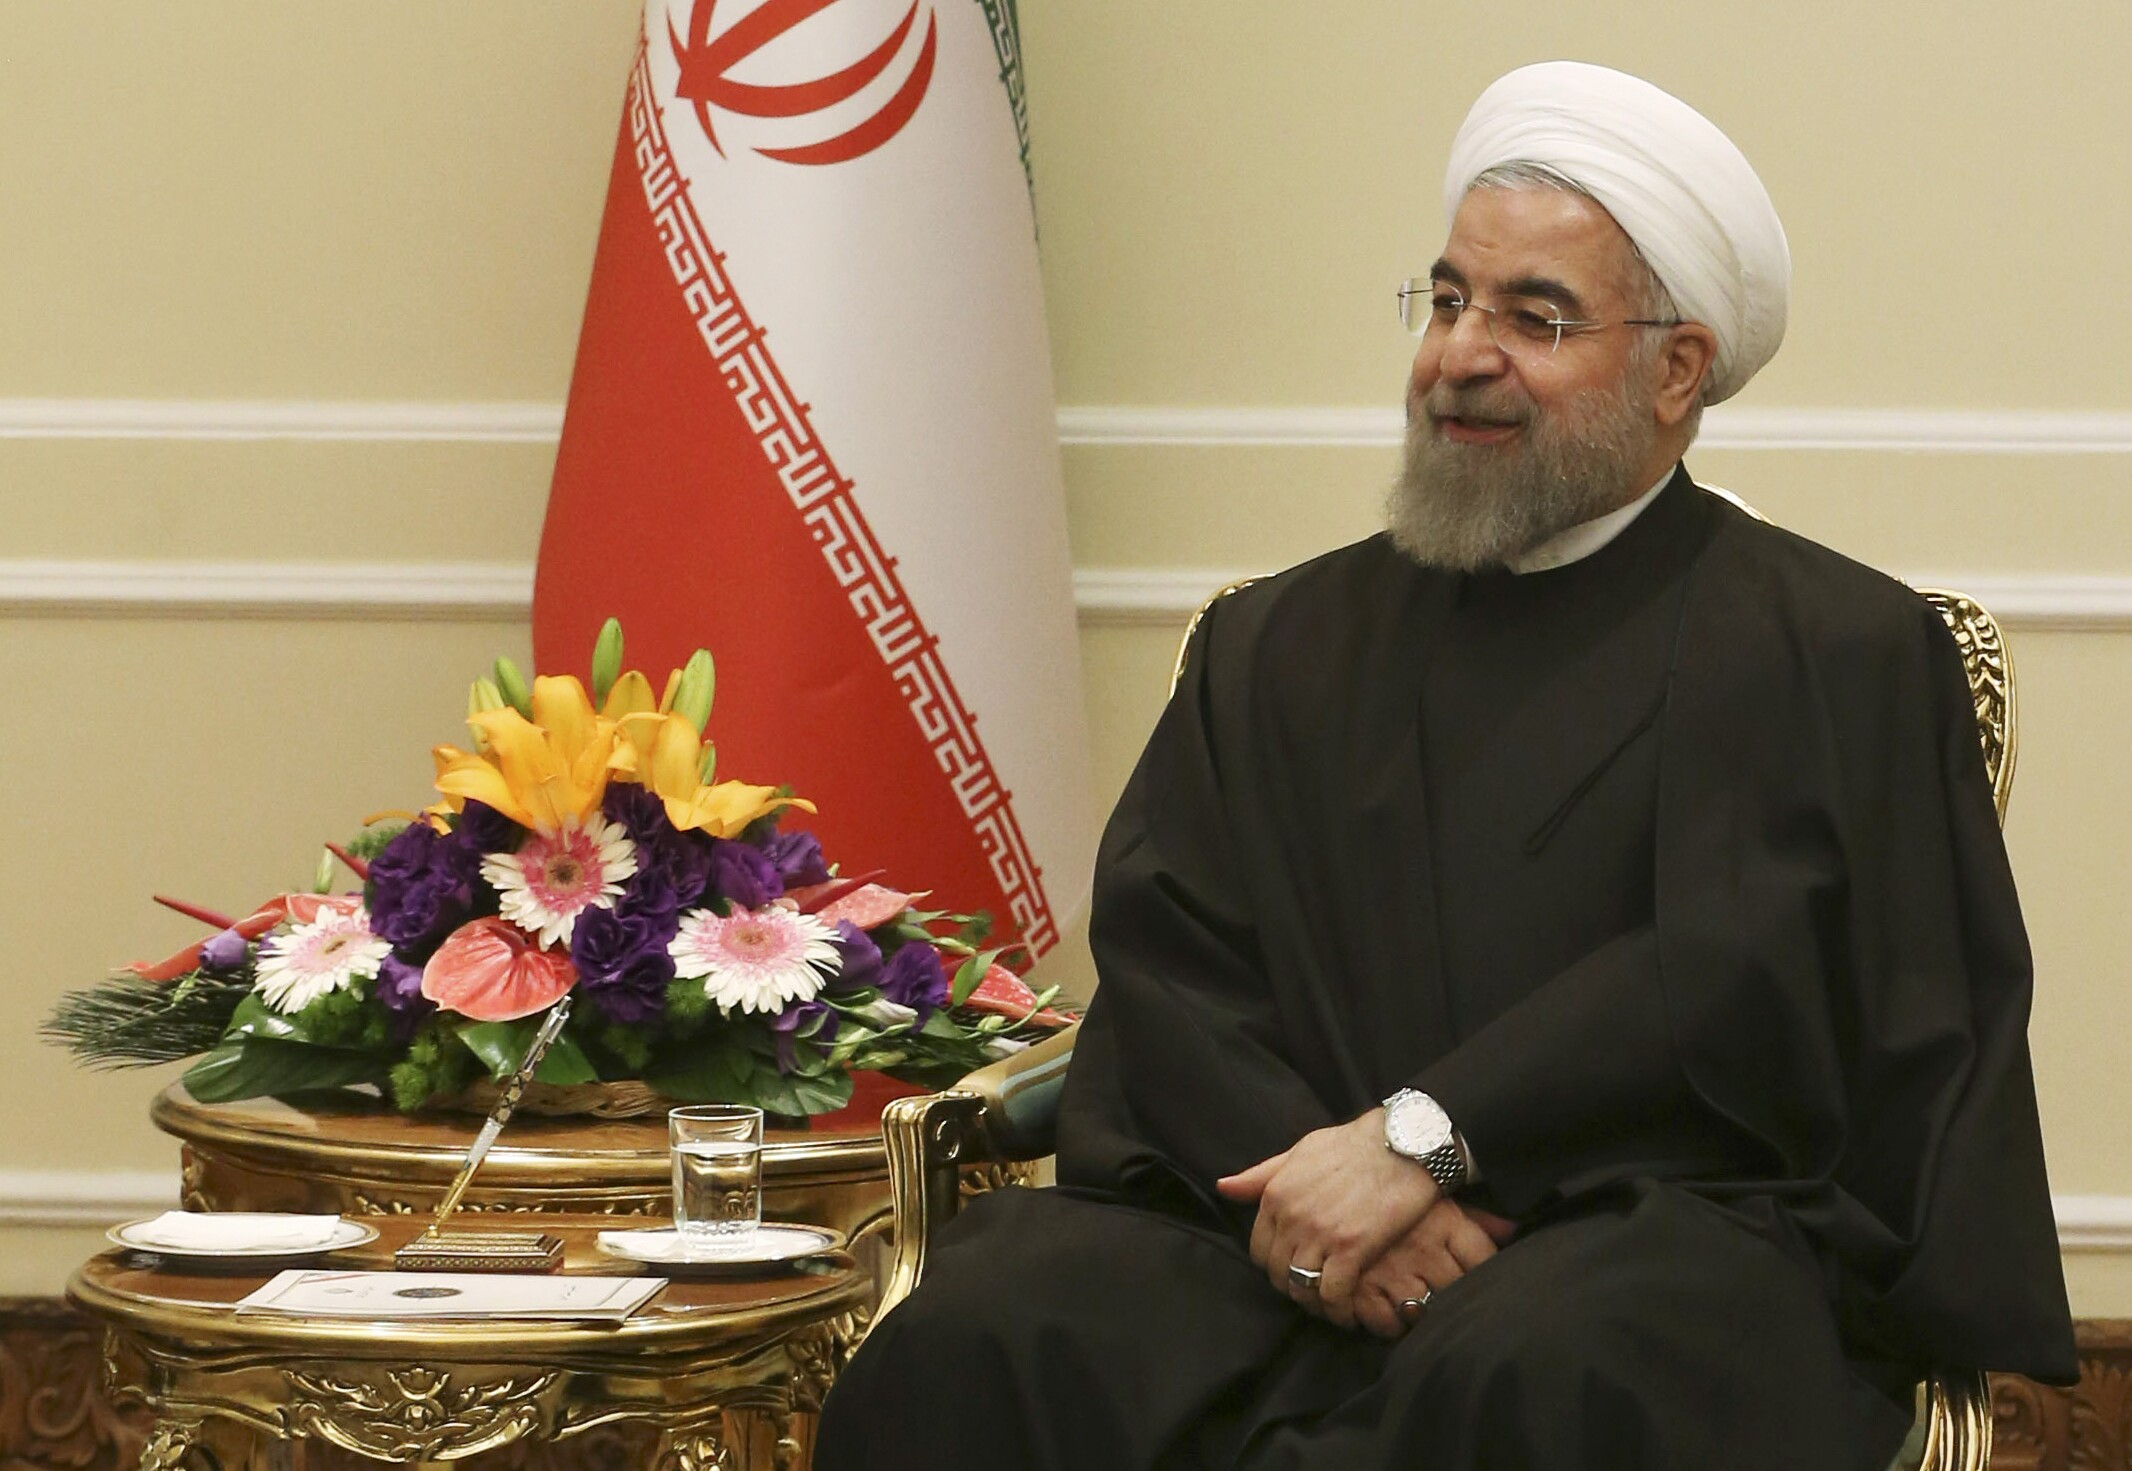 Despite reports, White House insists Iran 'is not self-inspecting'